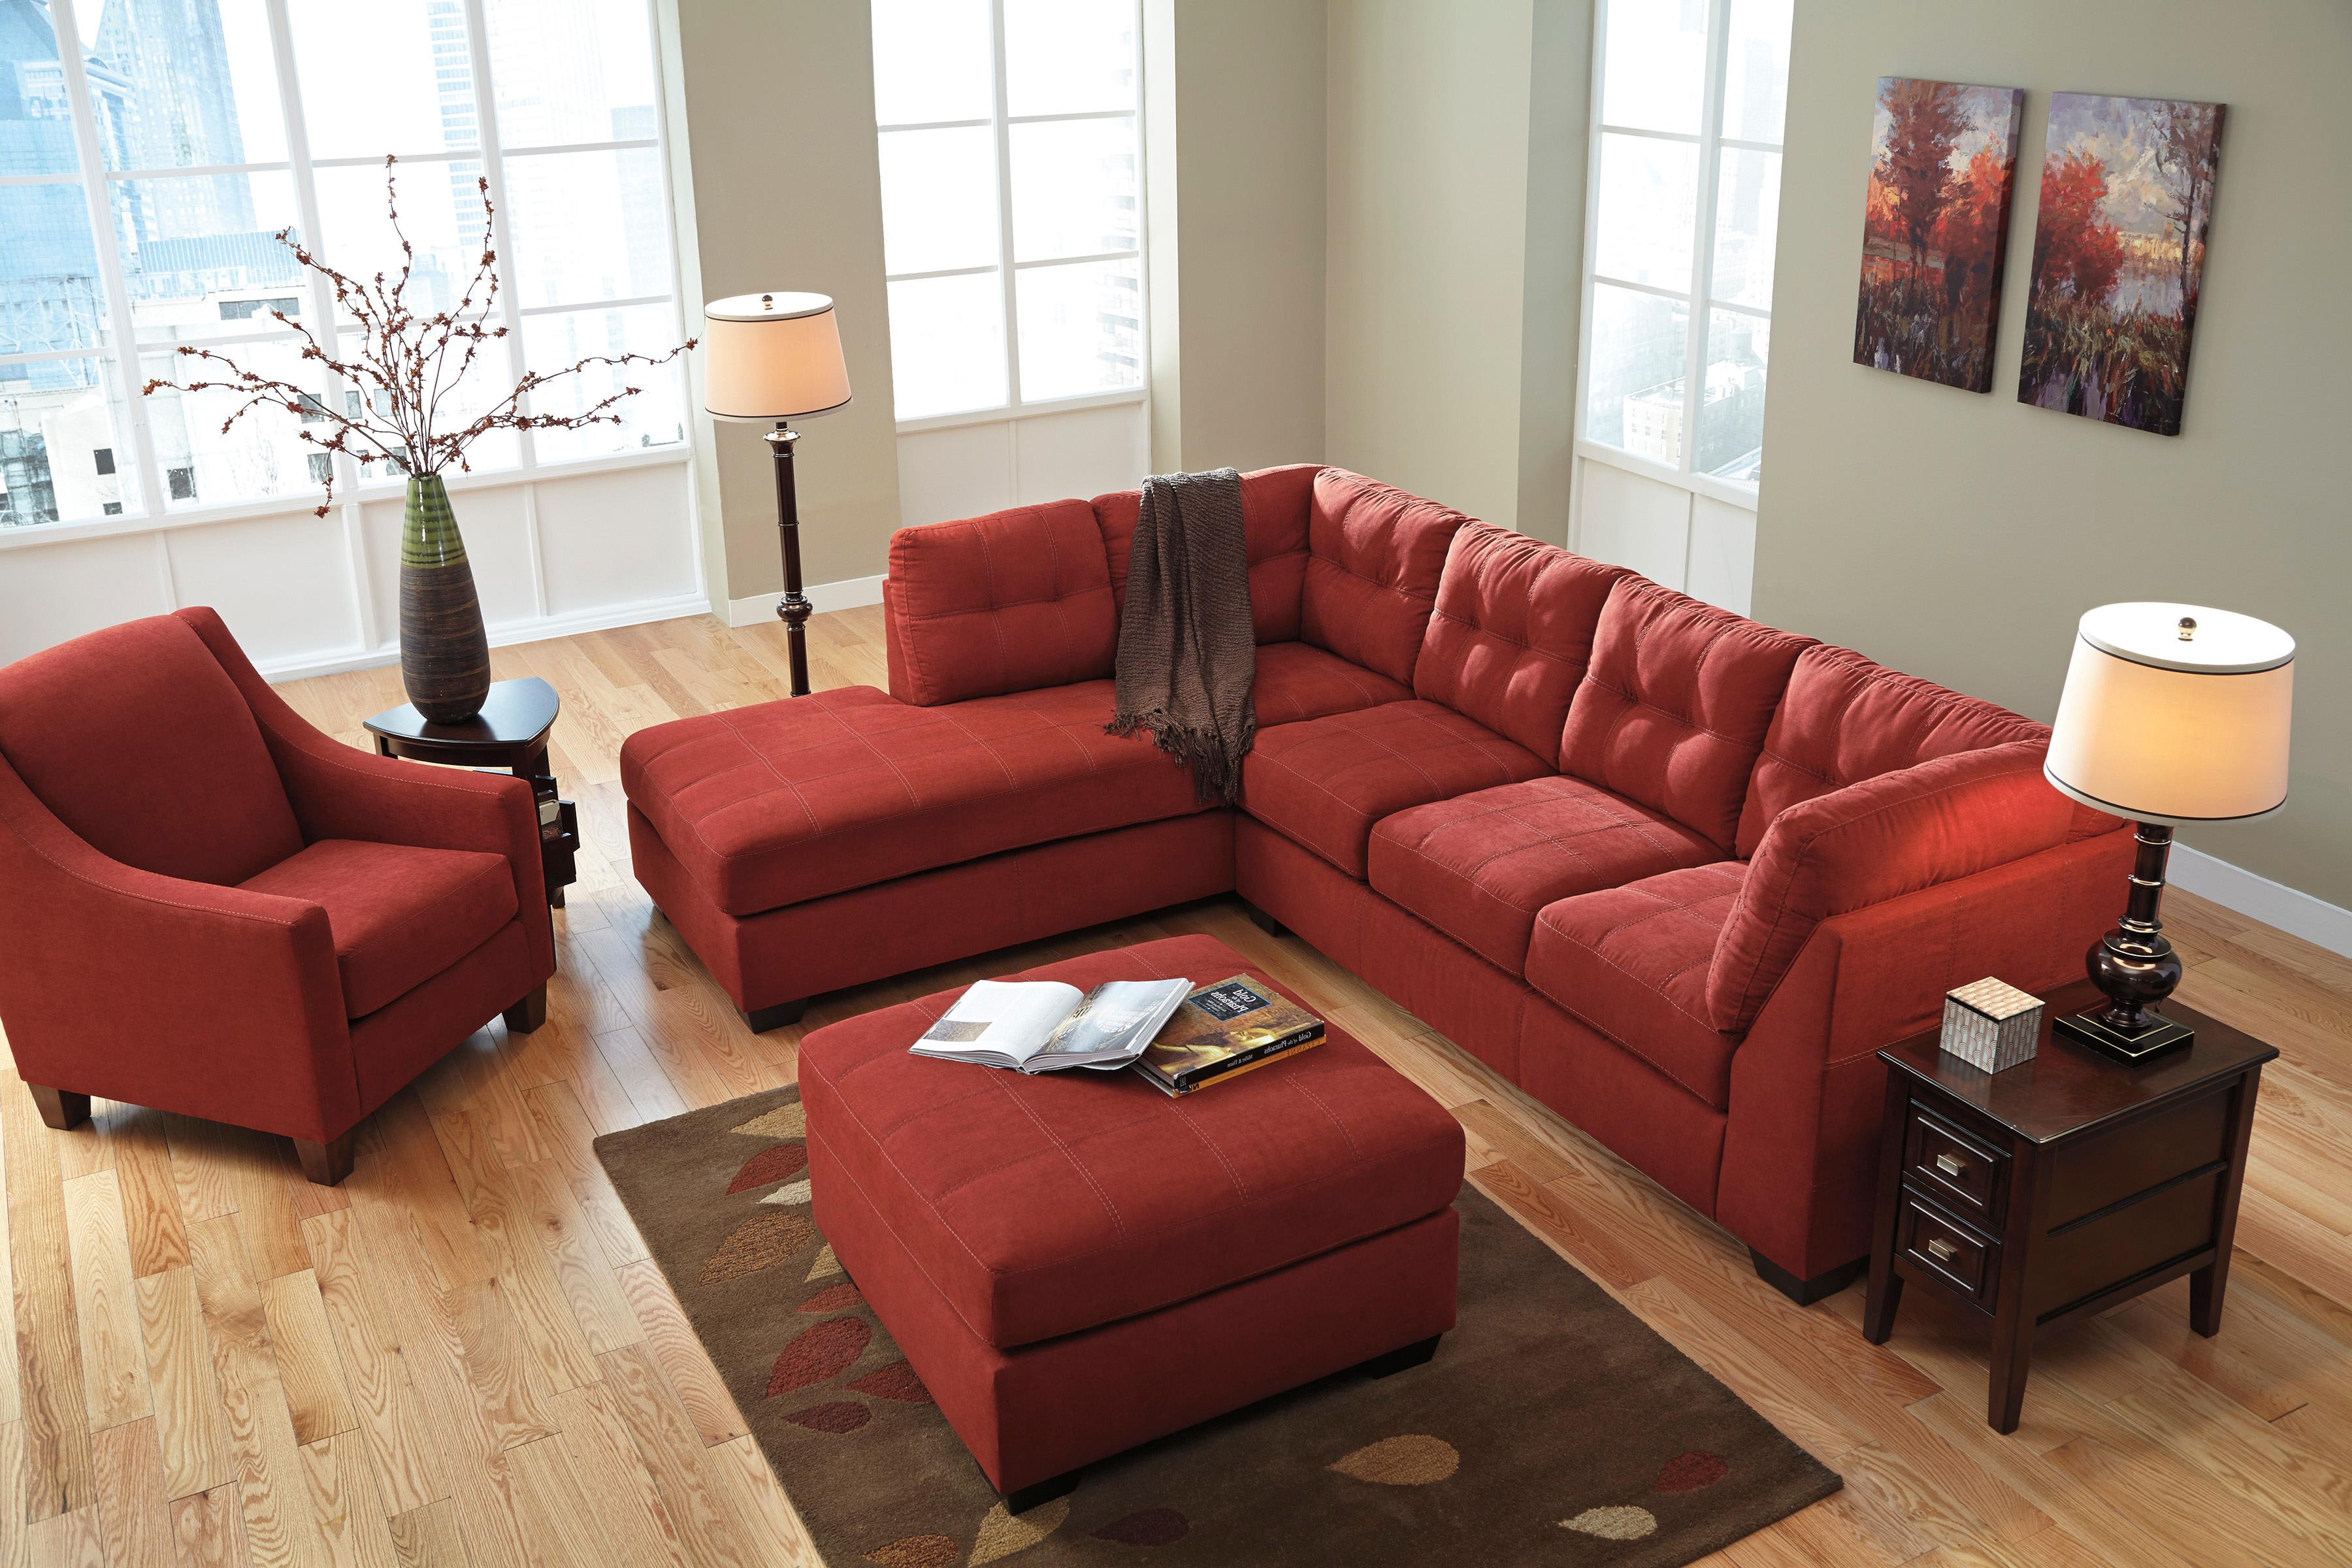 Benchcraft maier sienna 2 piece sectional with left for 2 piece sectional sofa with chaise